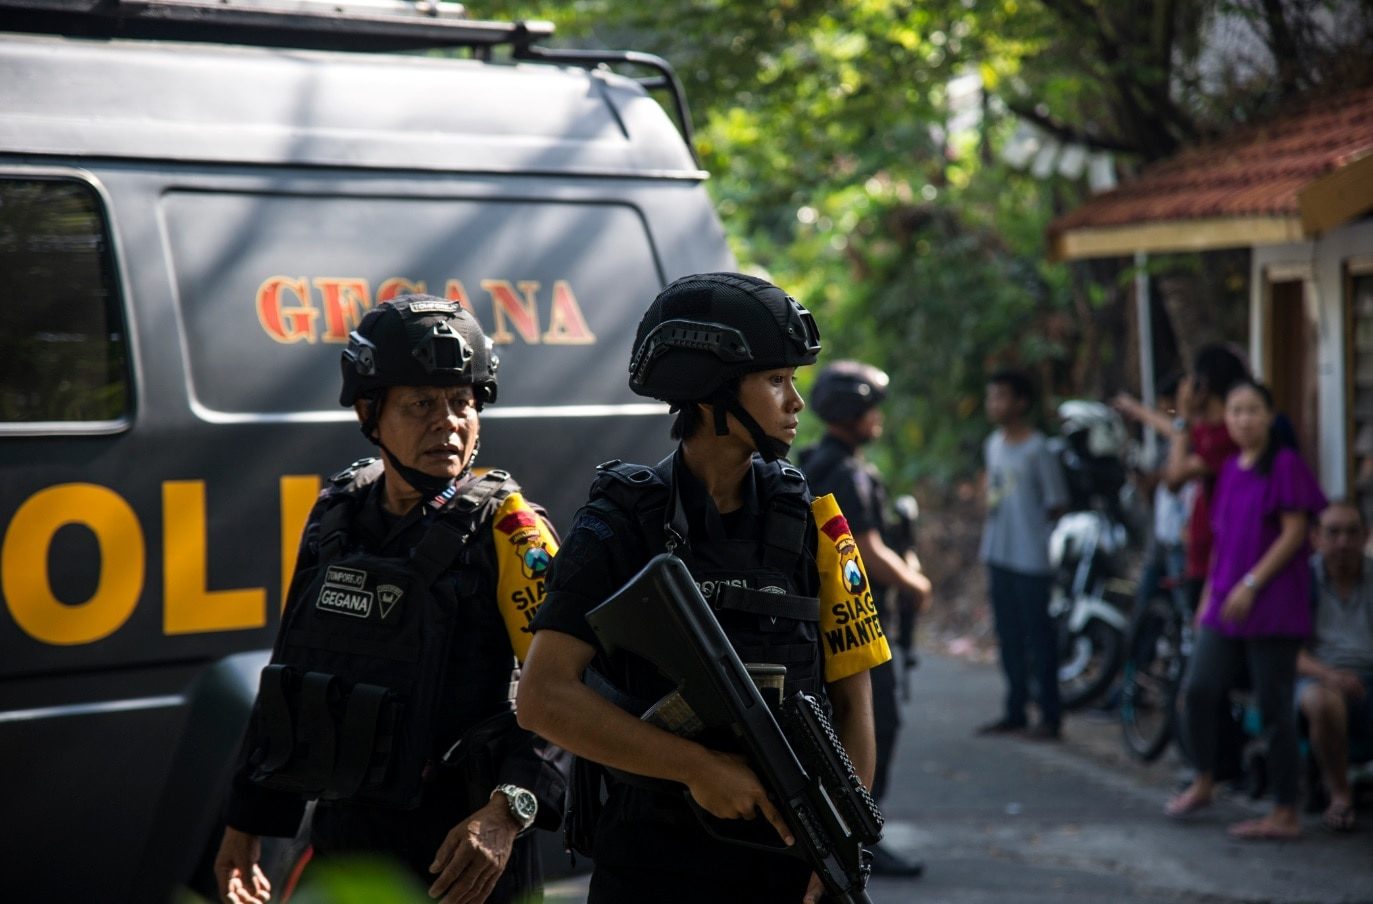 Family of 6 bombs 3 churches in Indonesia